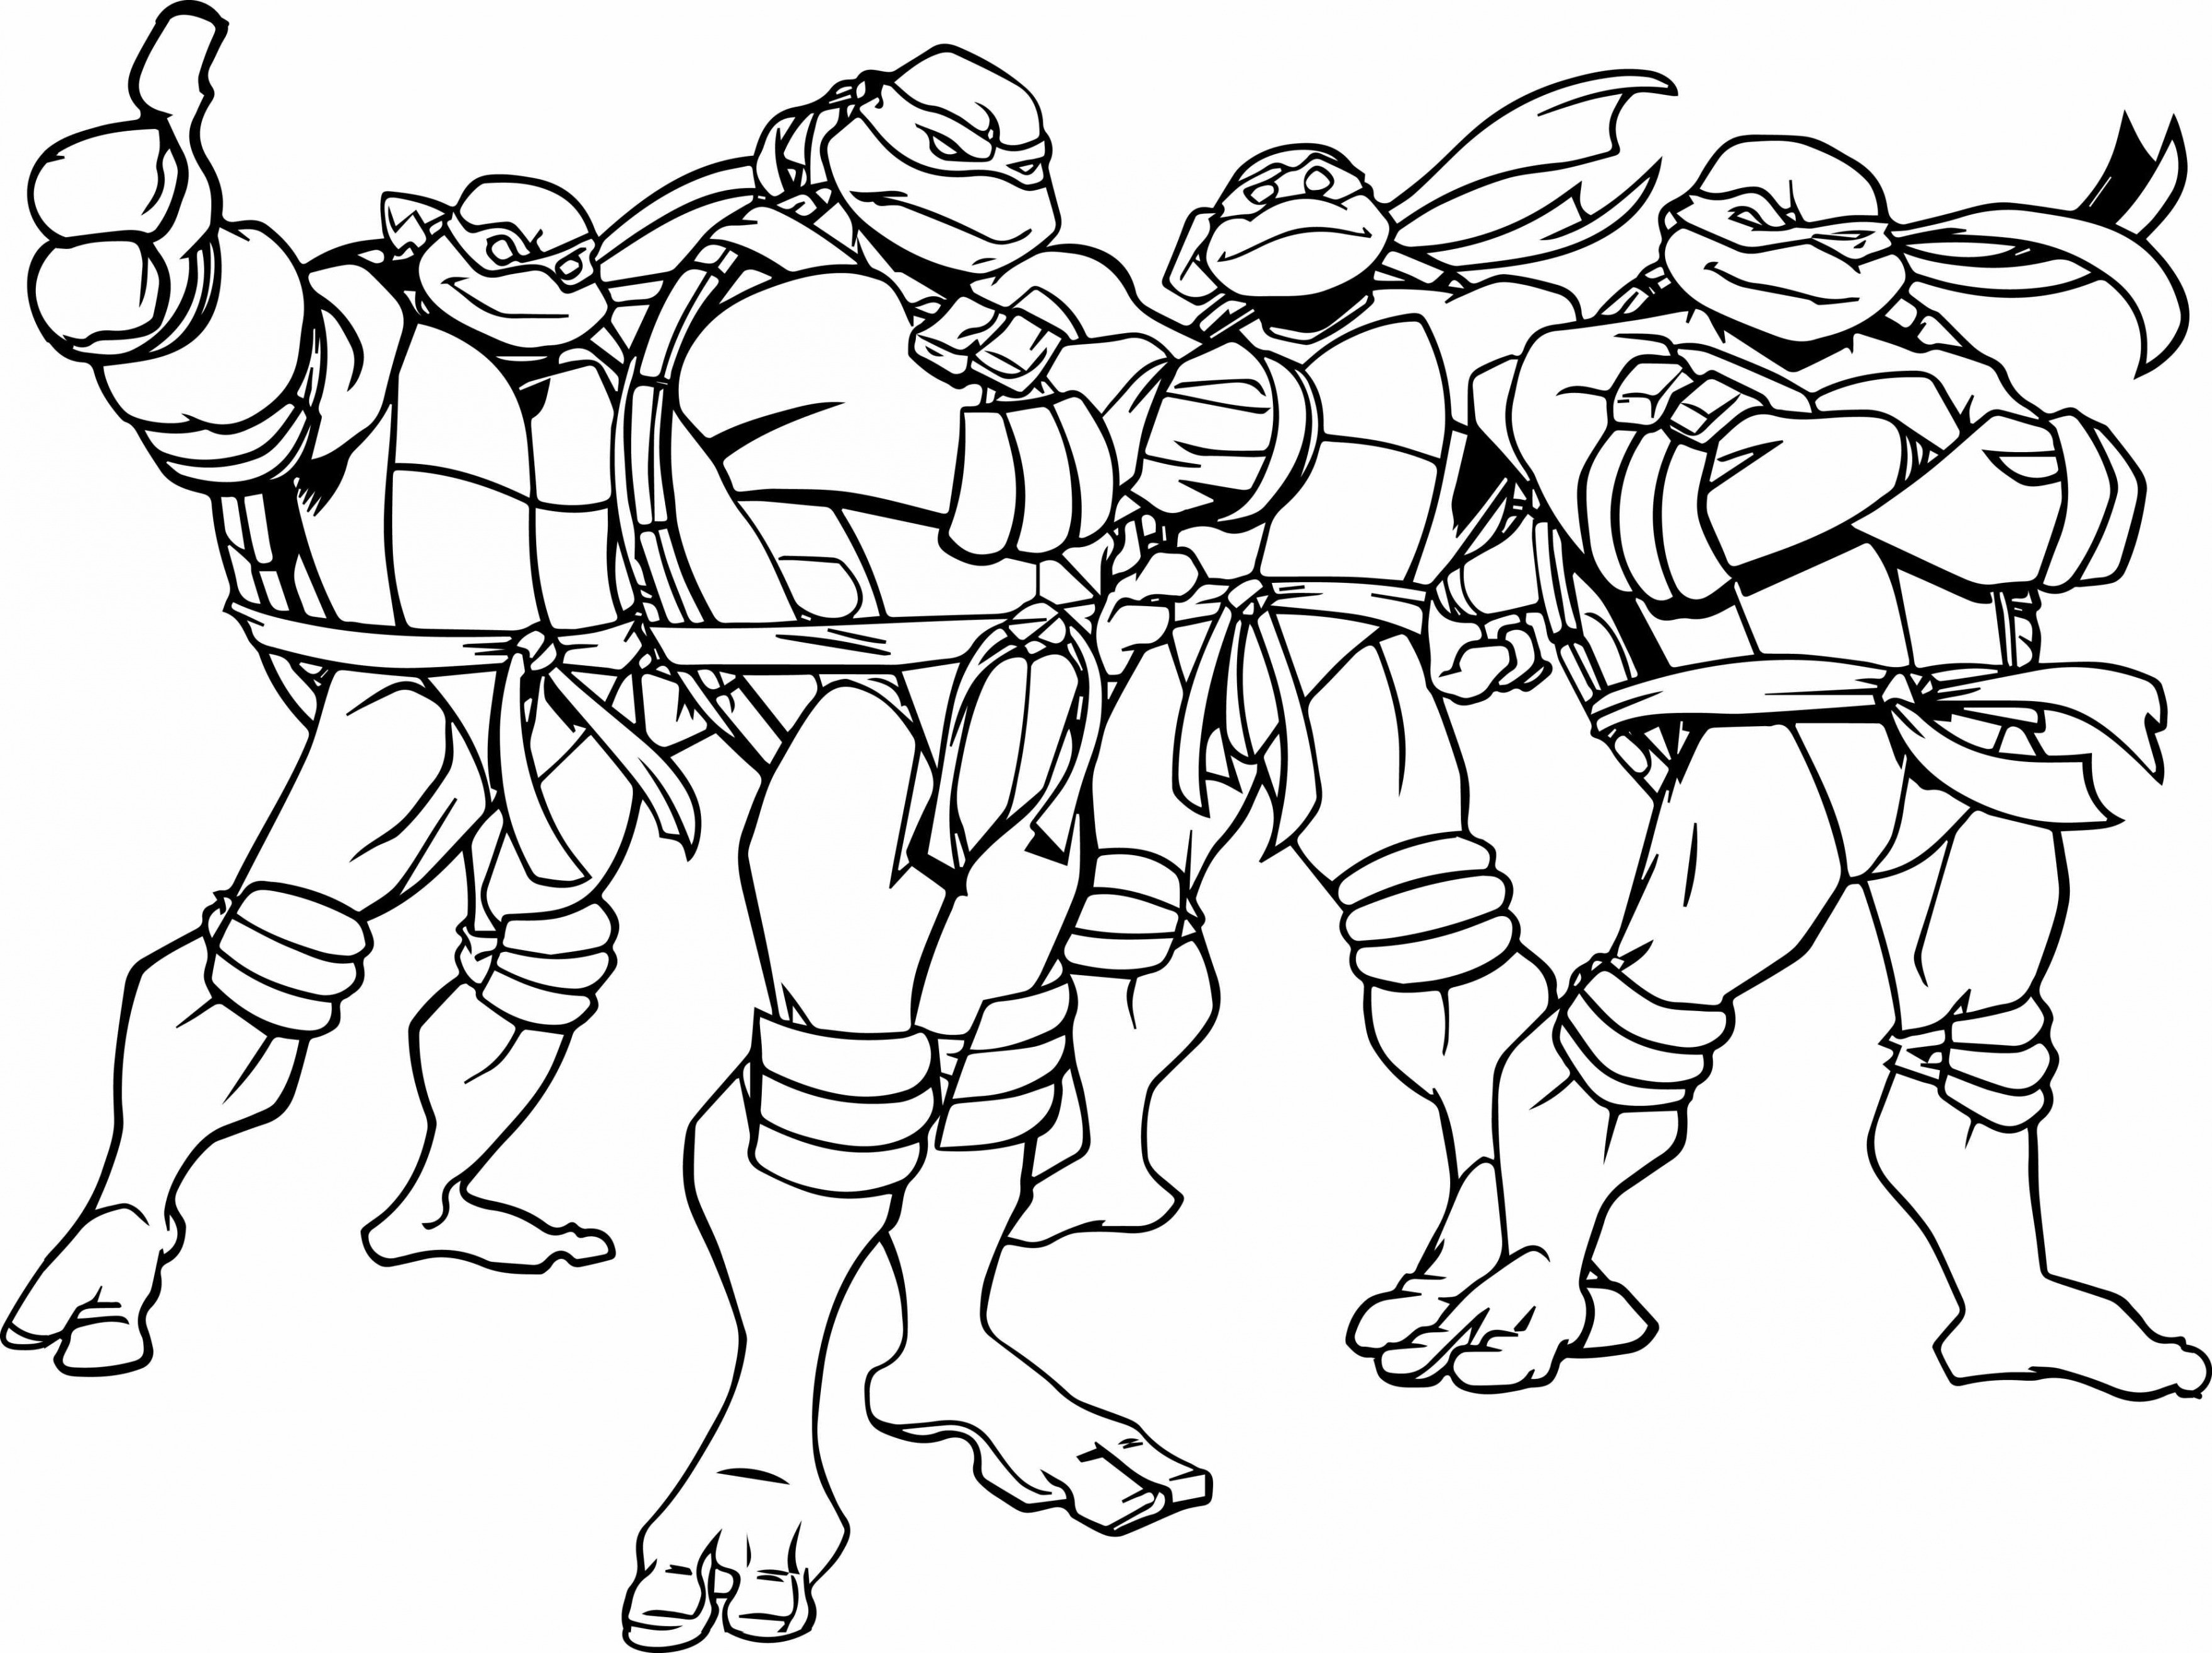 Christmas Coloring Pages Ninja Turtles With Refrence